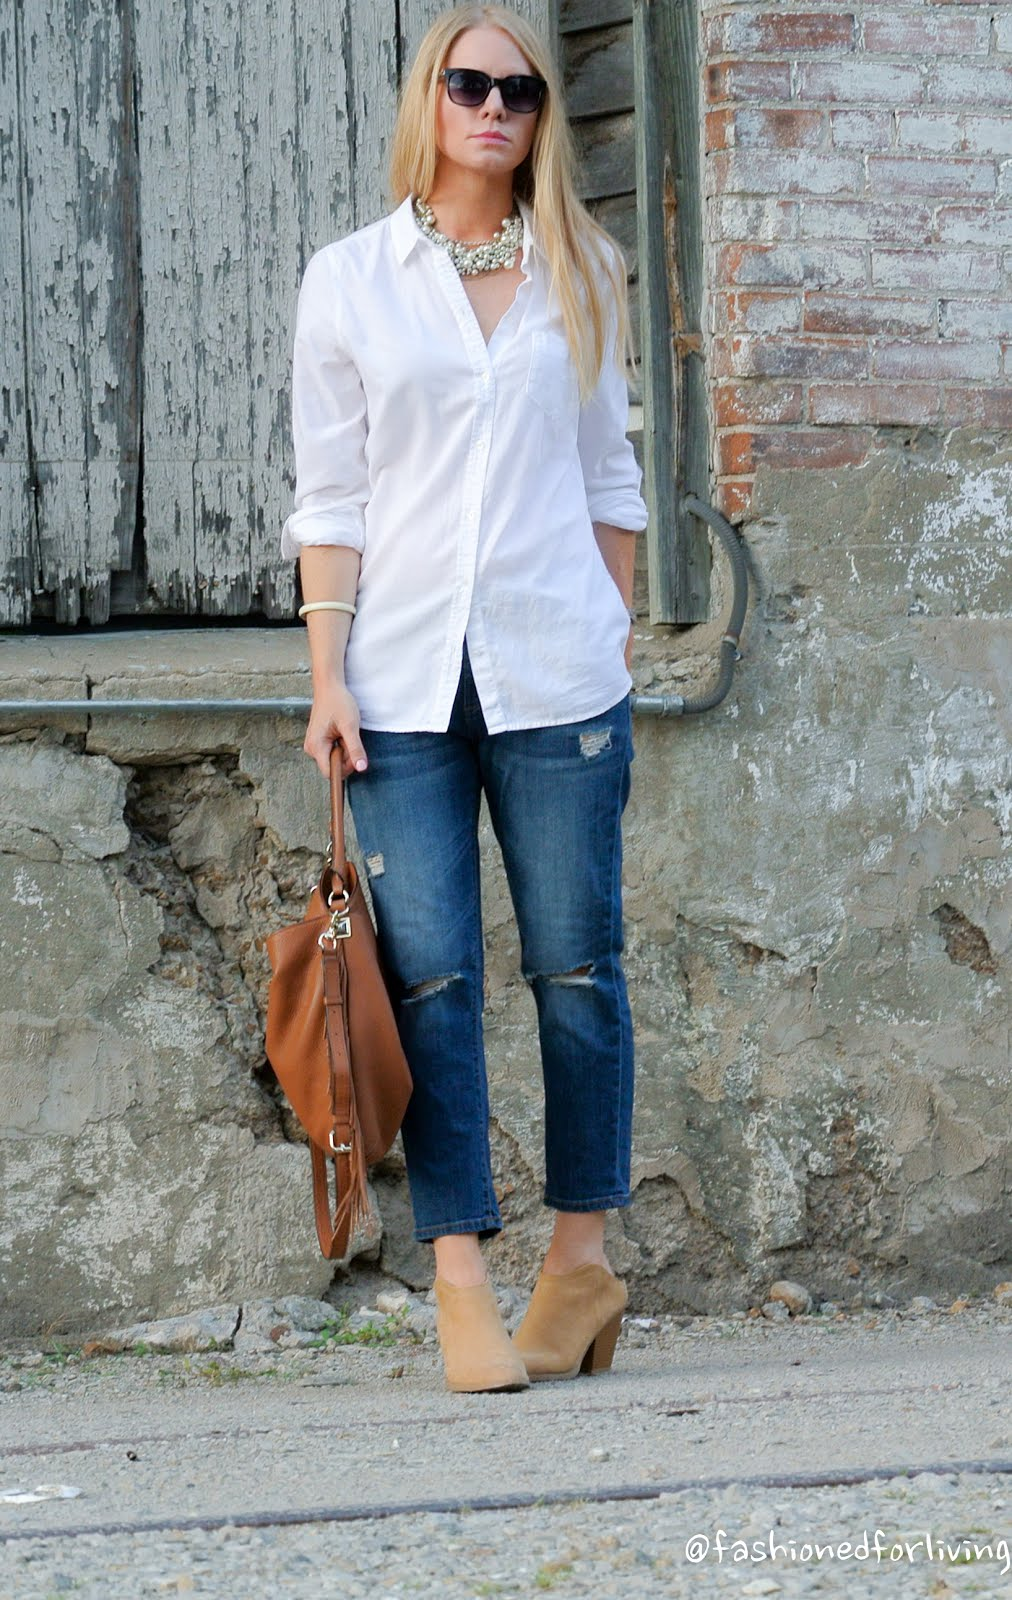 Fashioned For Living: Cropped Jeans Outfit With White